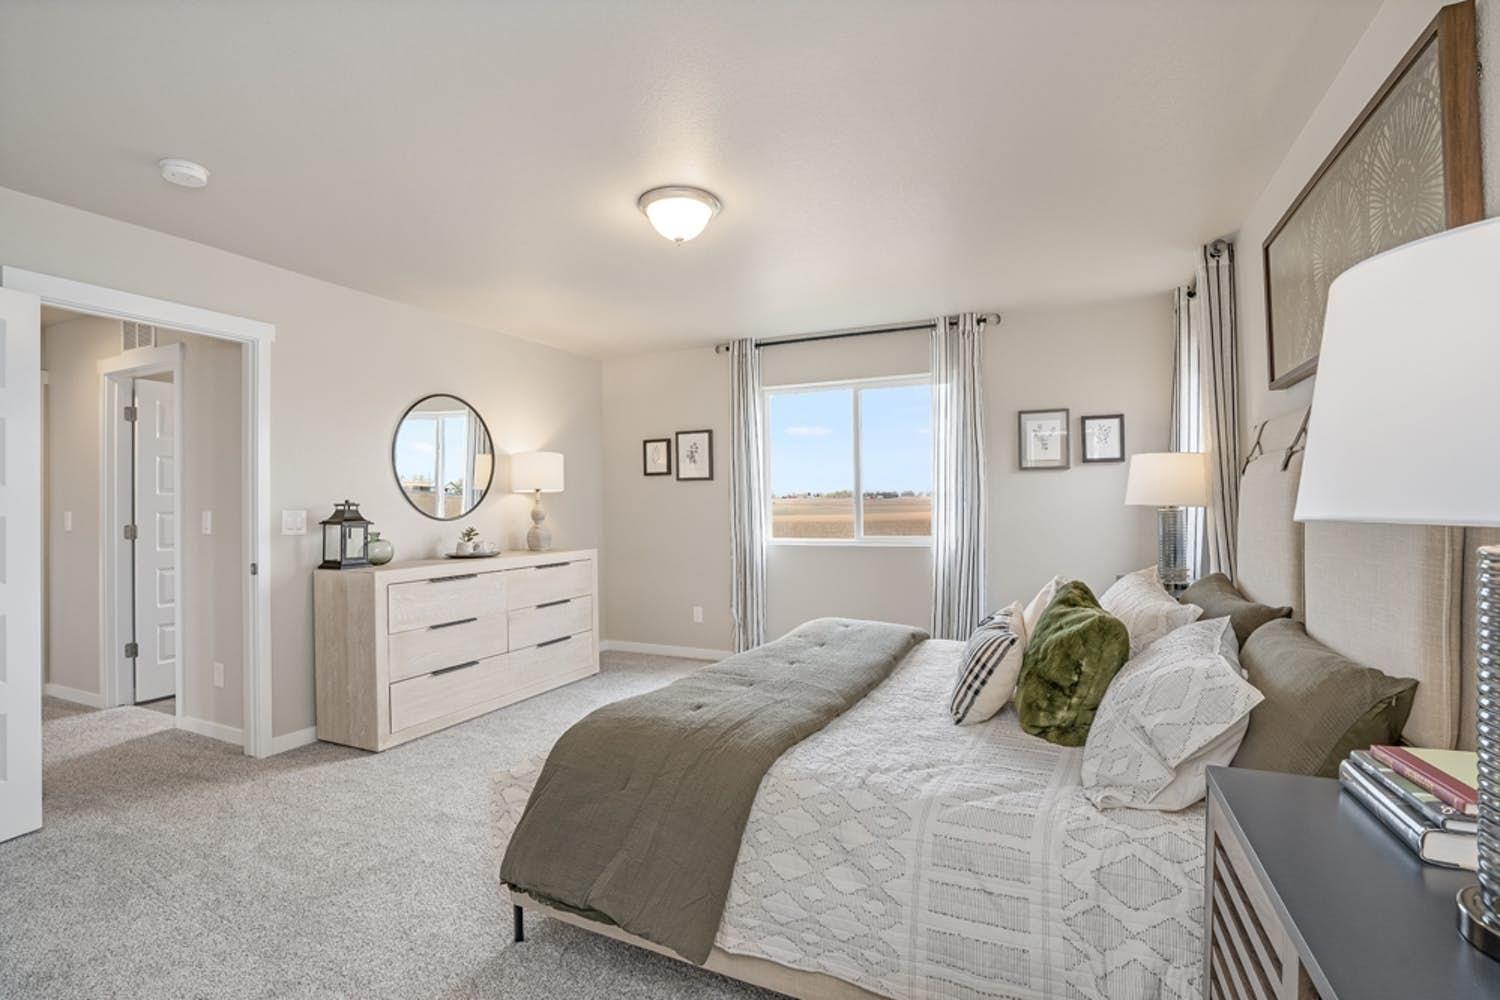 Bedroom featured in the Sonoma at Sorrento By View Homes Northern Colorado in Greeley, CO